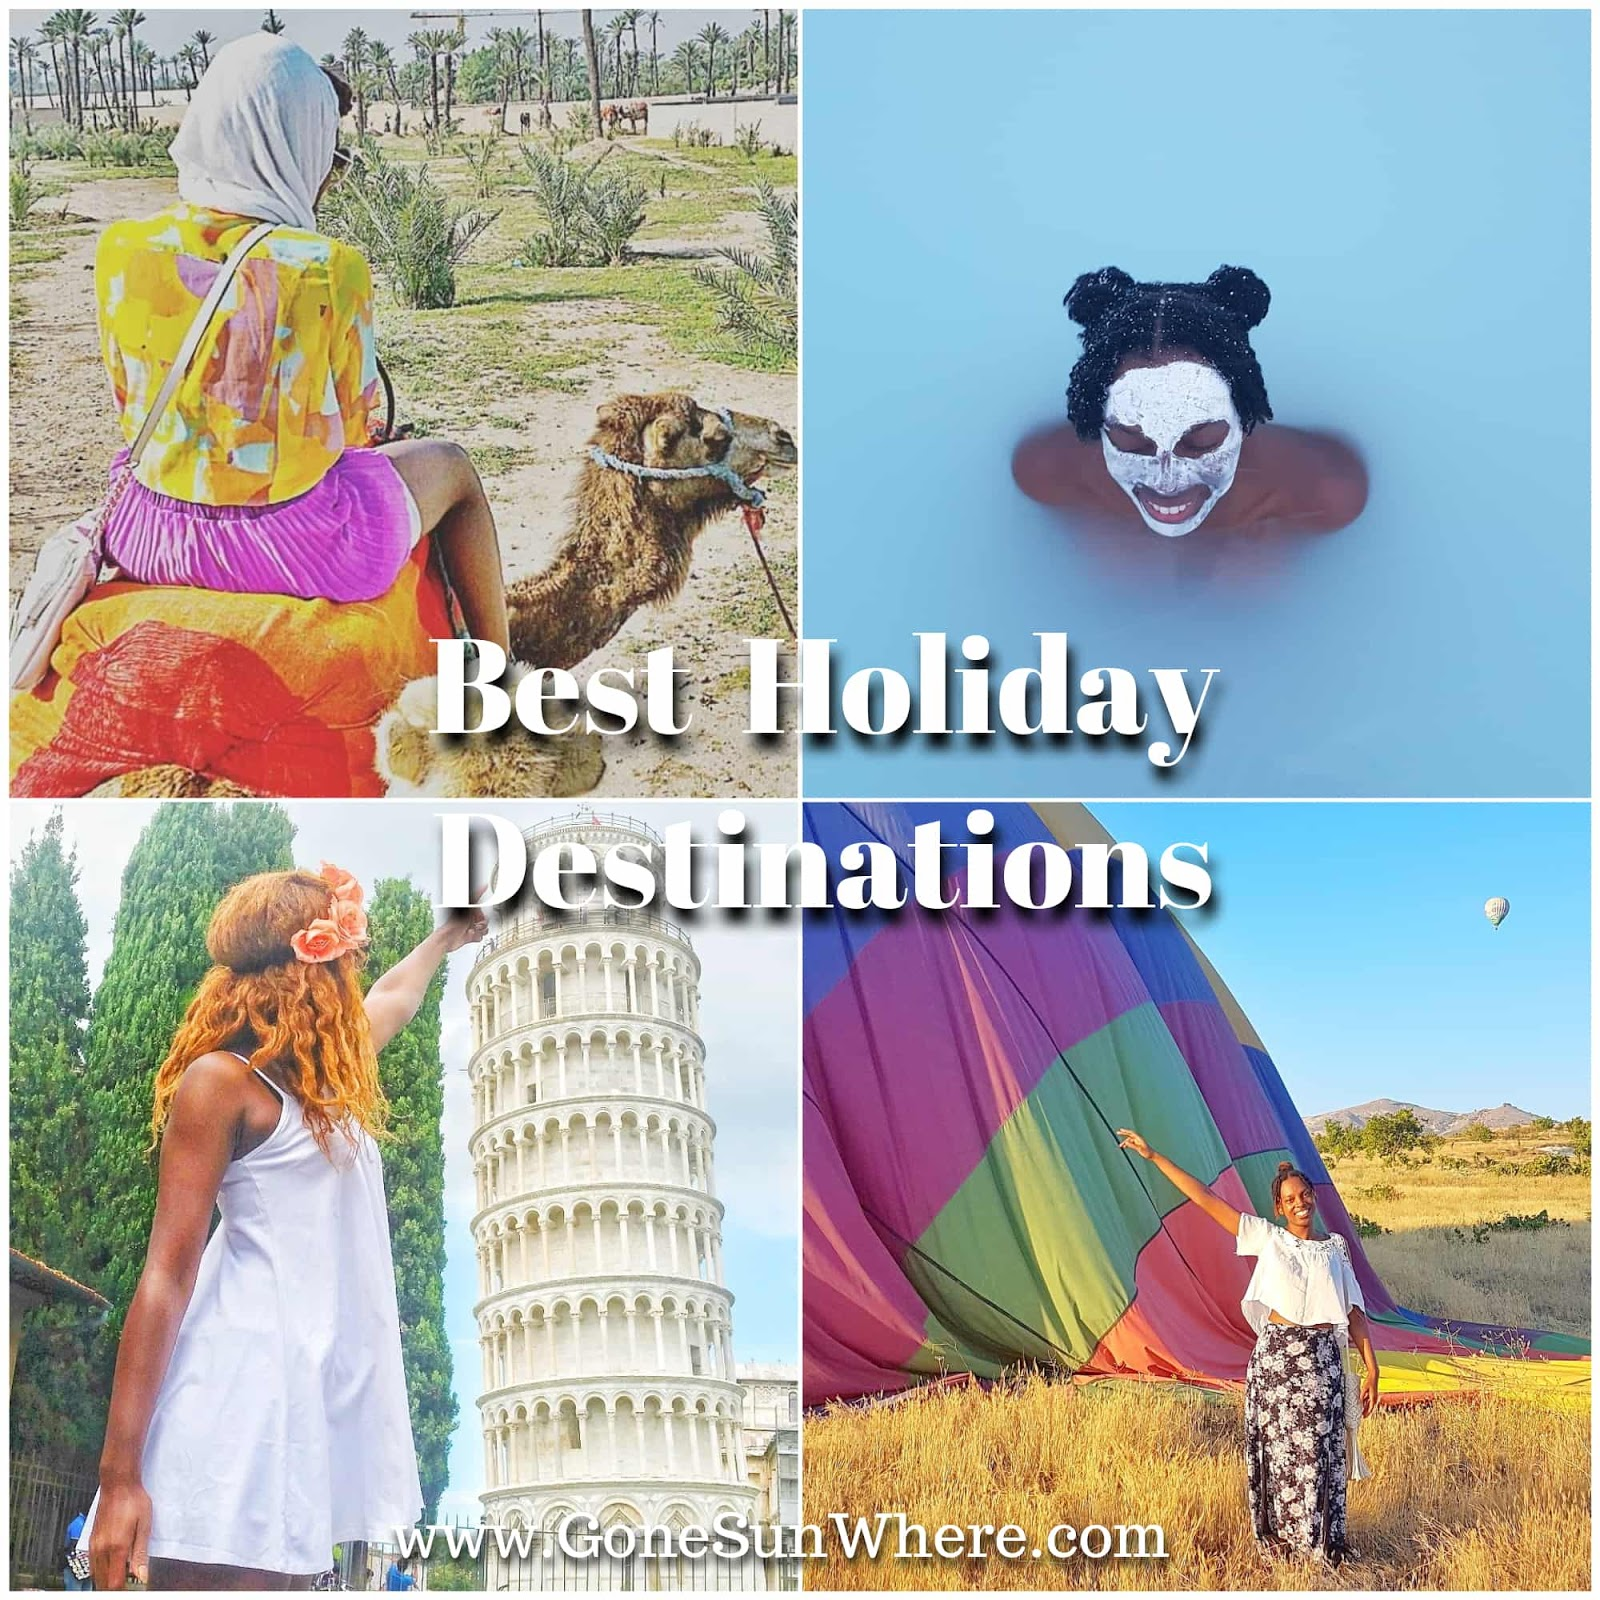 Best_Holiday_Destinations